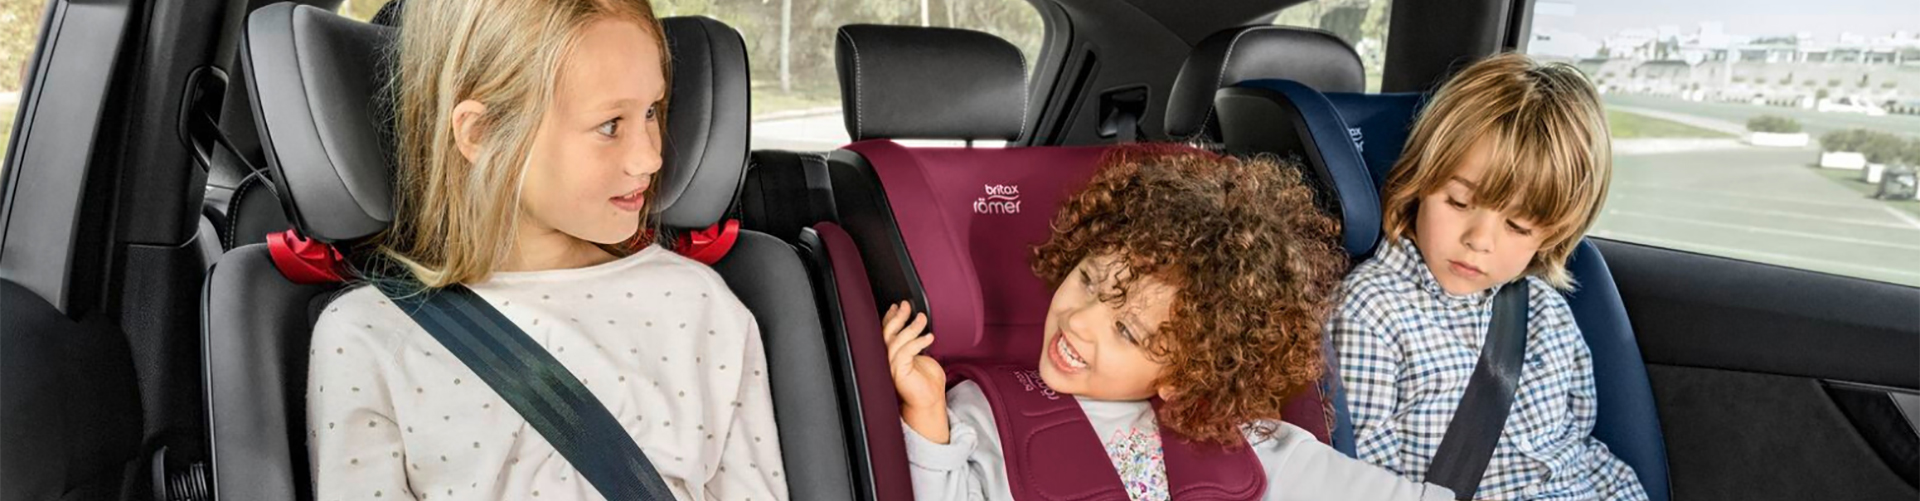 In Car Safety Center Hero Image